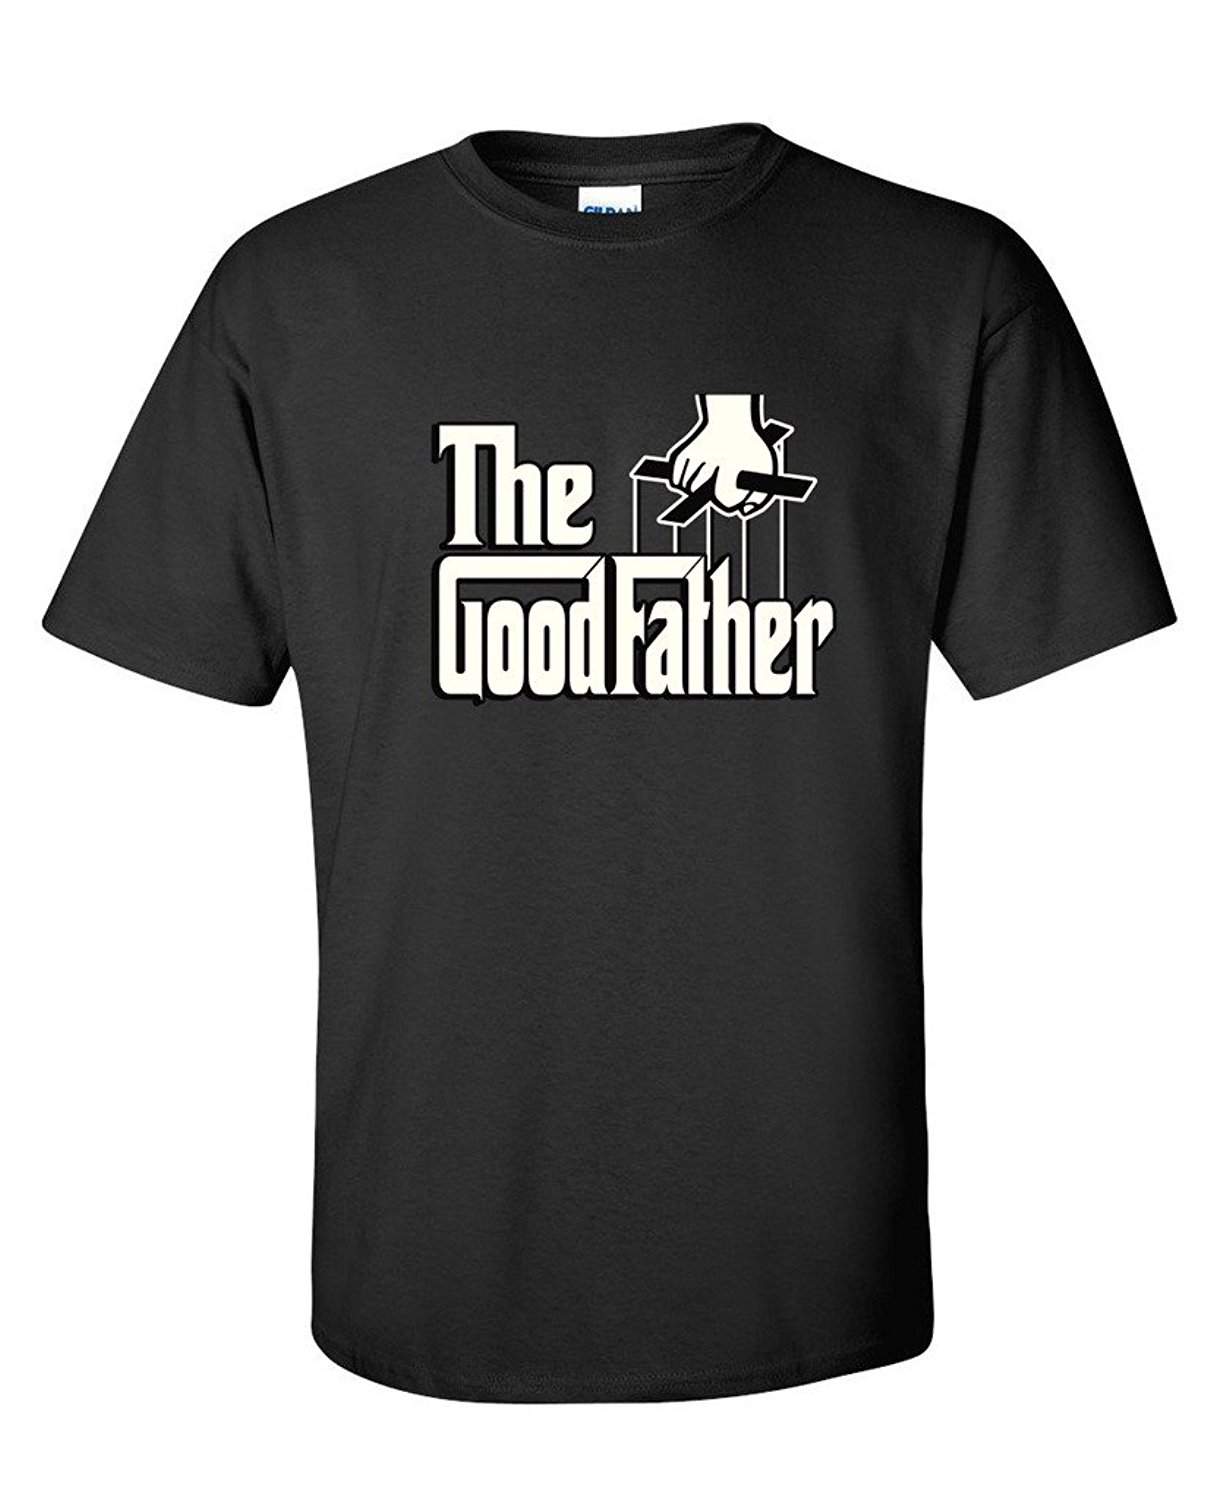 New 2017 Summer Fashion The Good Father Gift for Dad Fathers Day Funny T Shirt T-Shirt